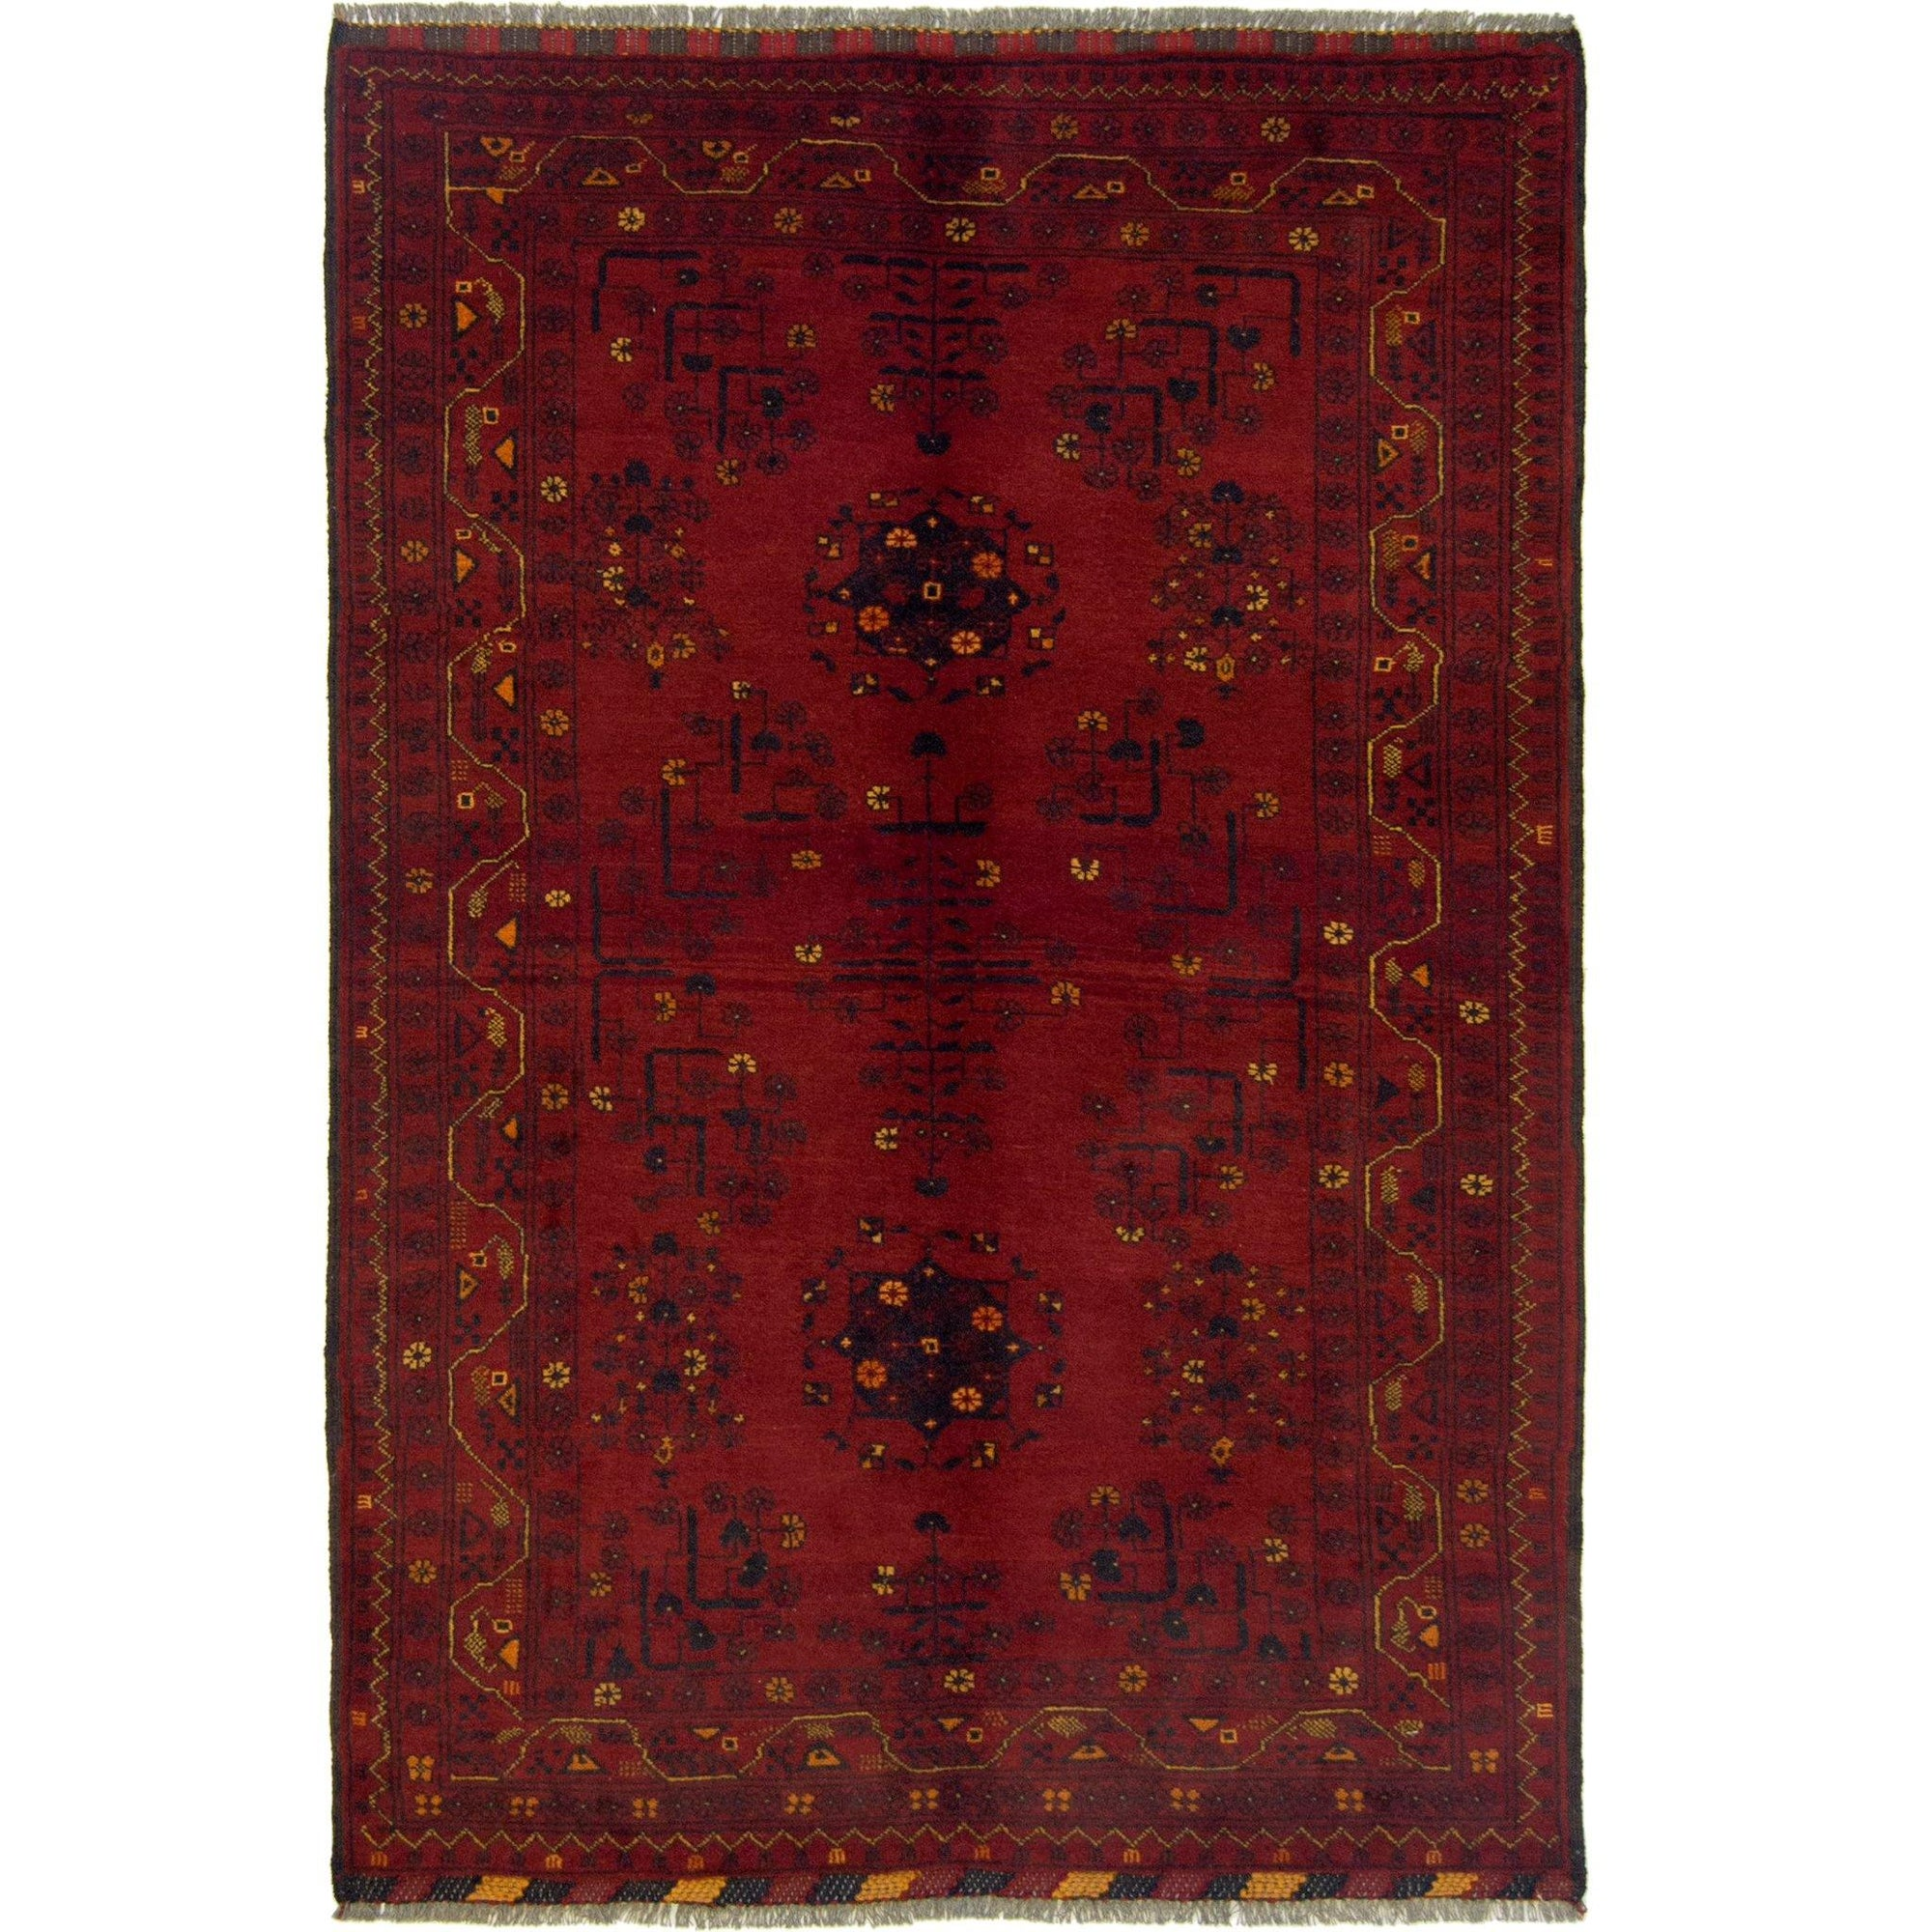 Fine Hand-knotted Wool Afghan Turkmen Rug 98cm x 144cm Persian-Rug | House-of-Haghi | NewMarket | Auckland | NZ | Handmade Persian Rugs | Hand Knotted Persian Rugs